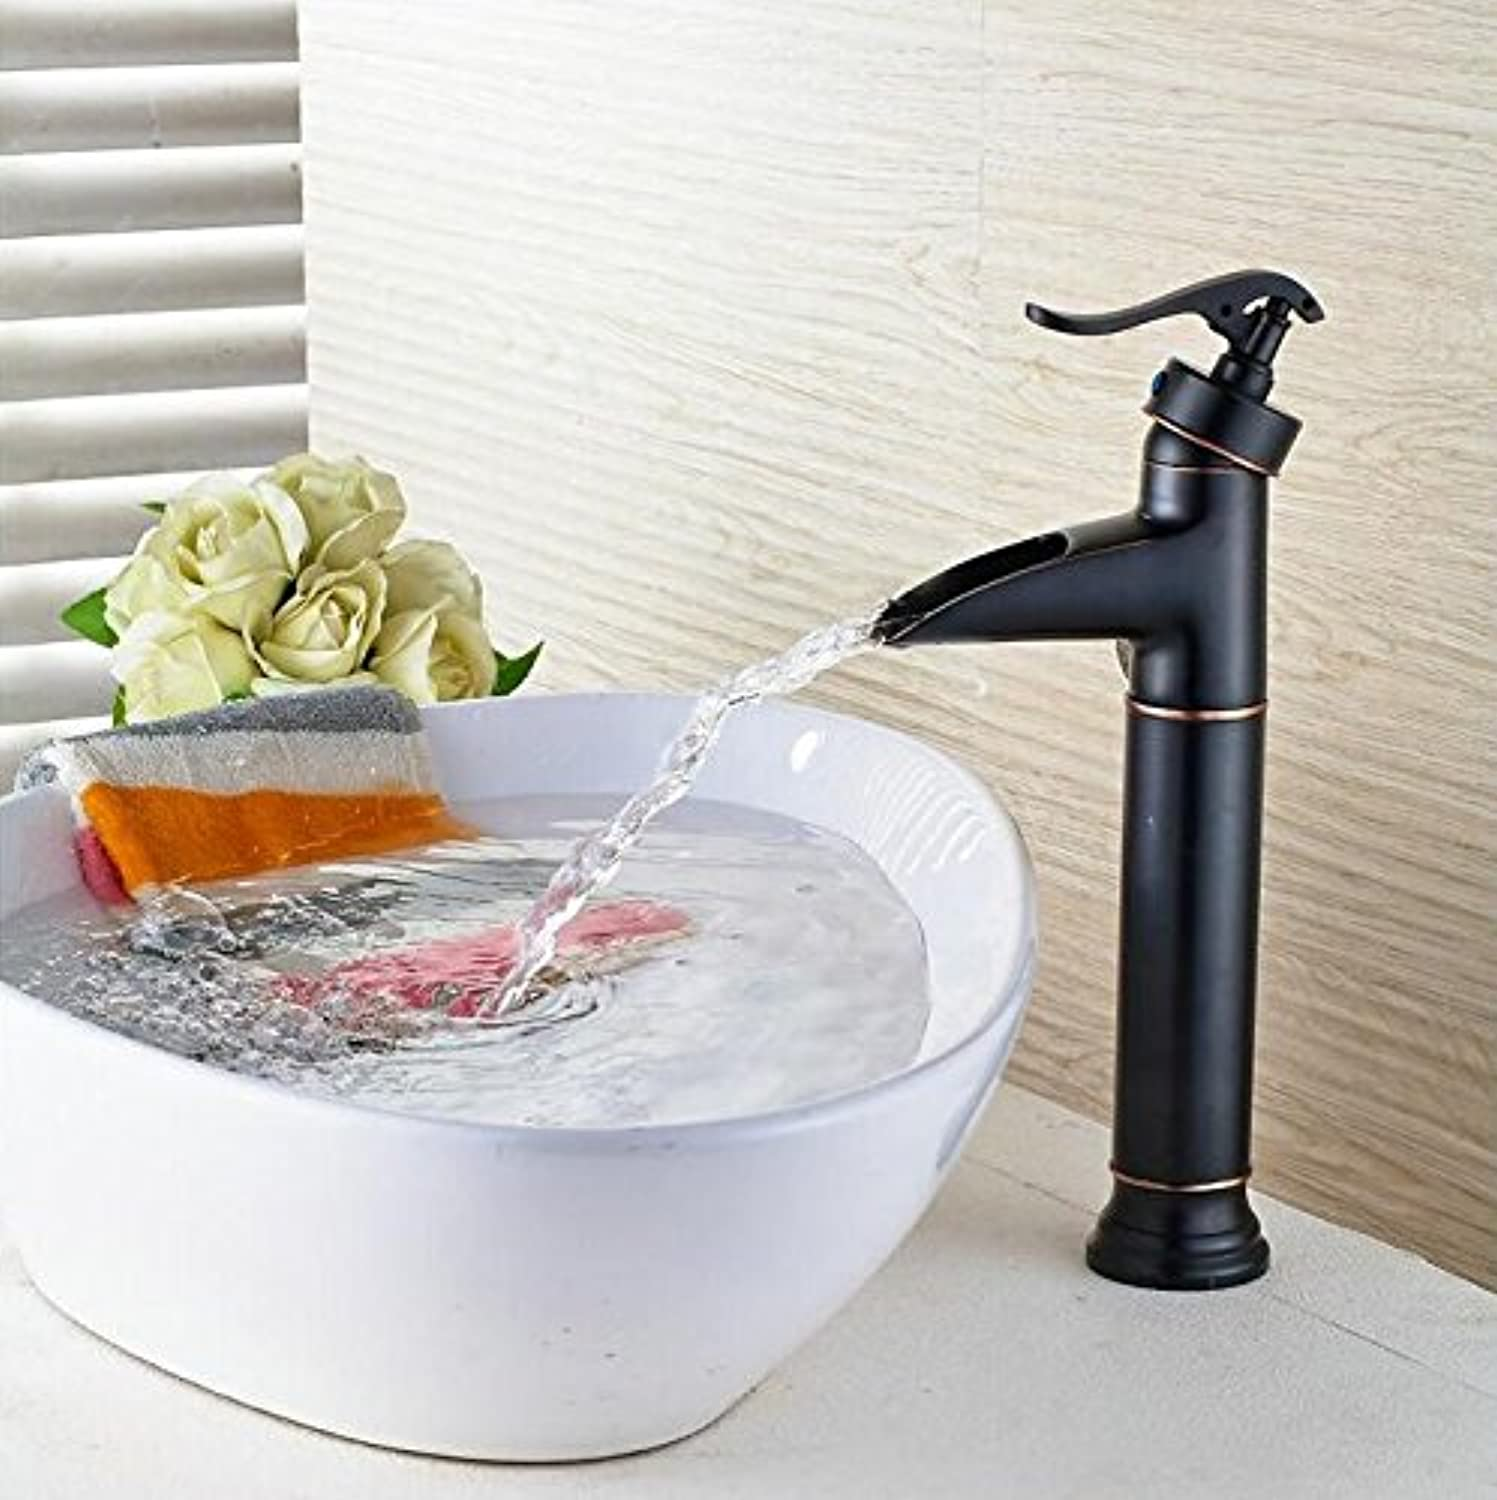 Mkkwp Black Oil Brushed Waterfall Faucet Bathroom Faucet Bathroom Crane Hot And Cold Water Tap